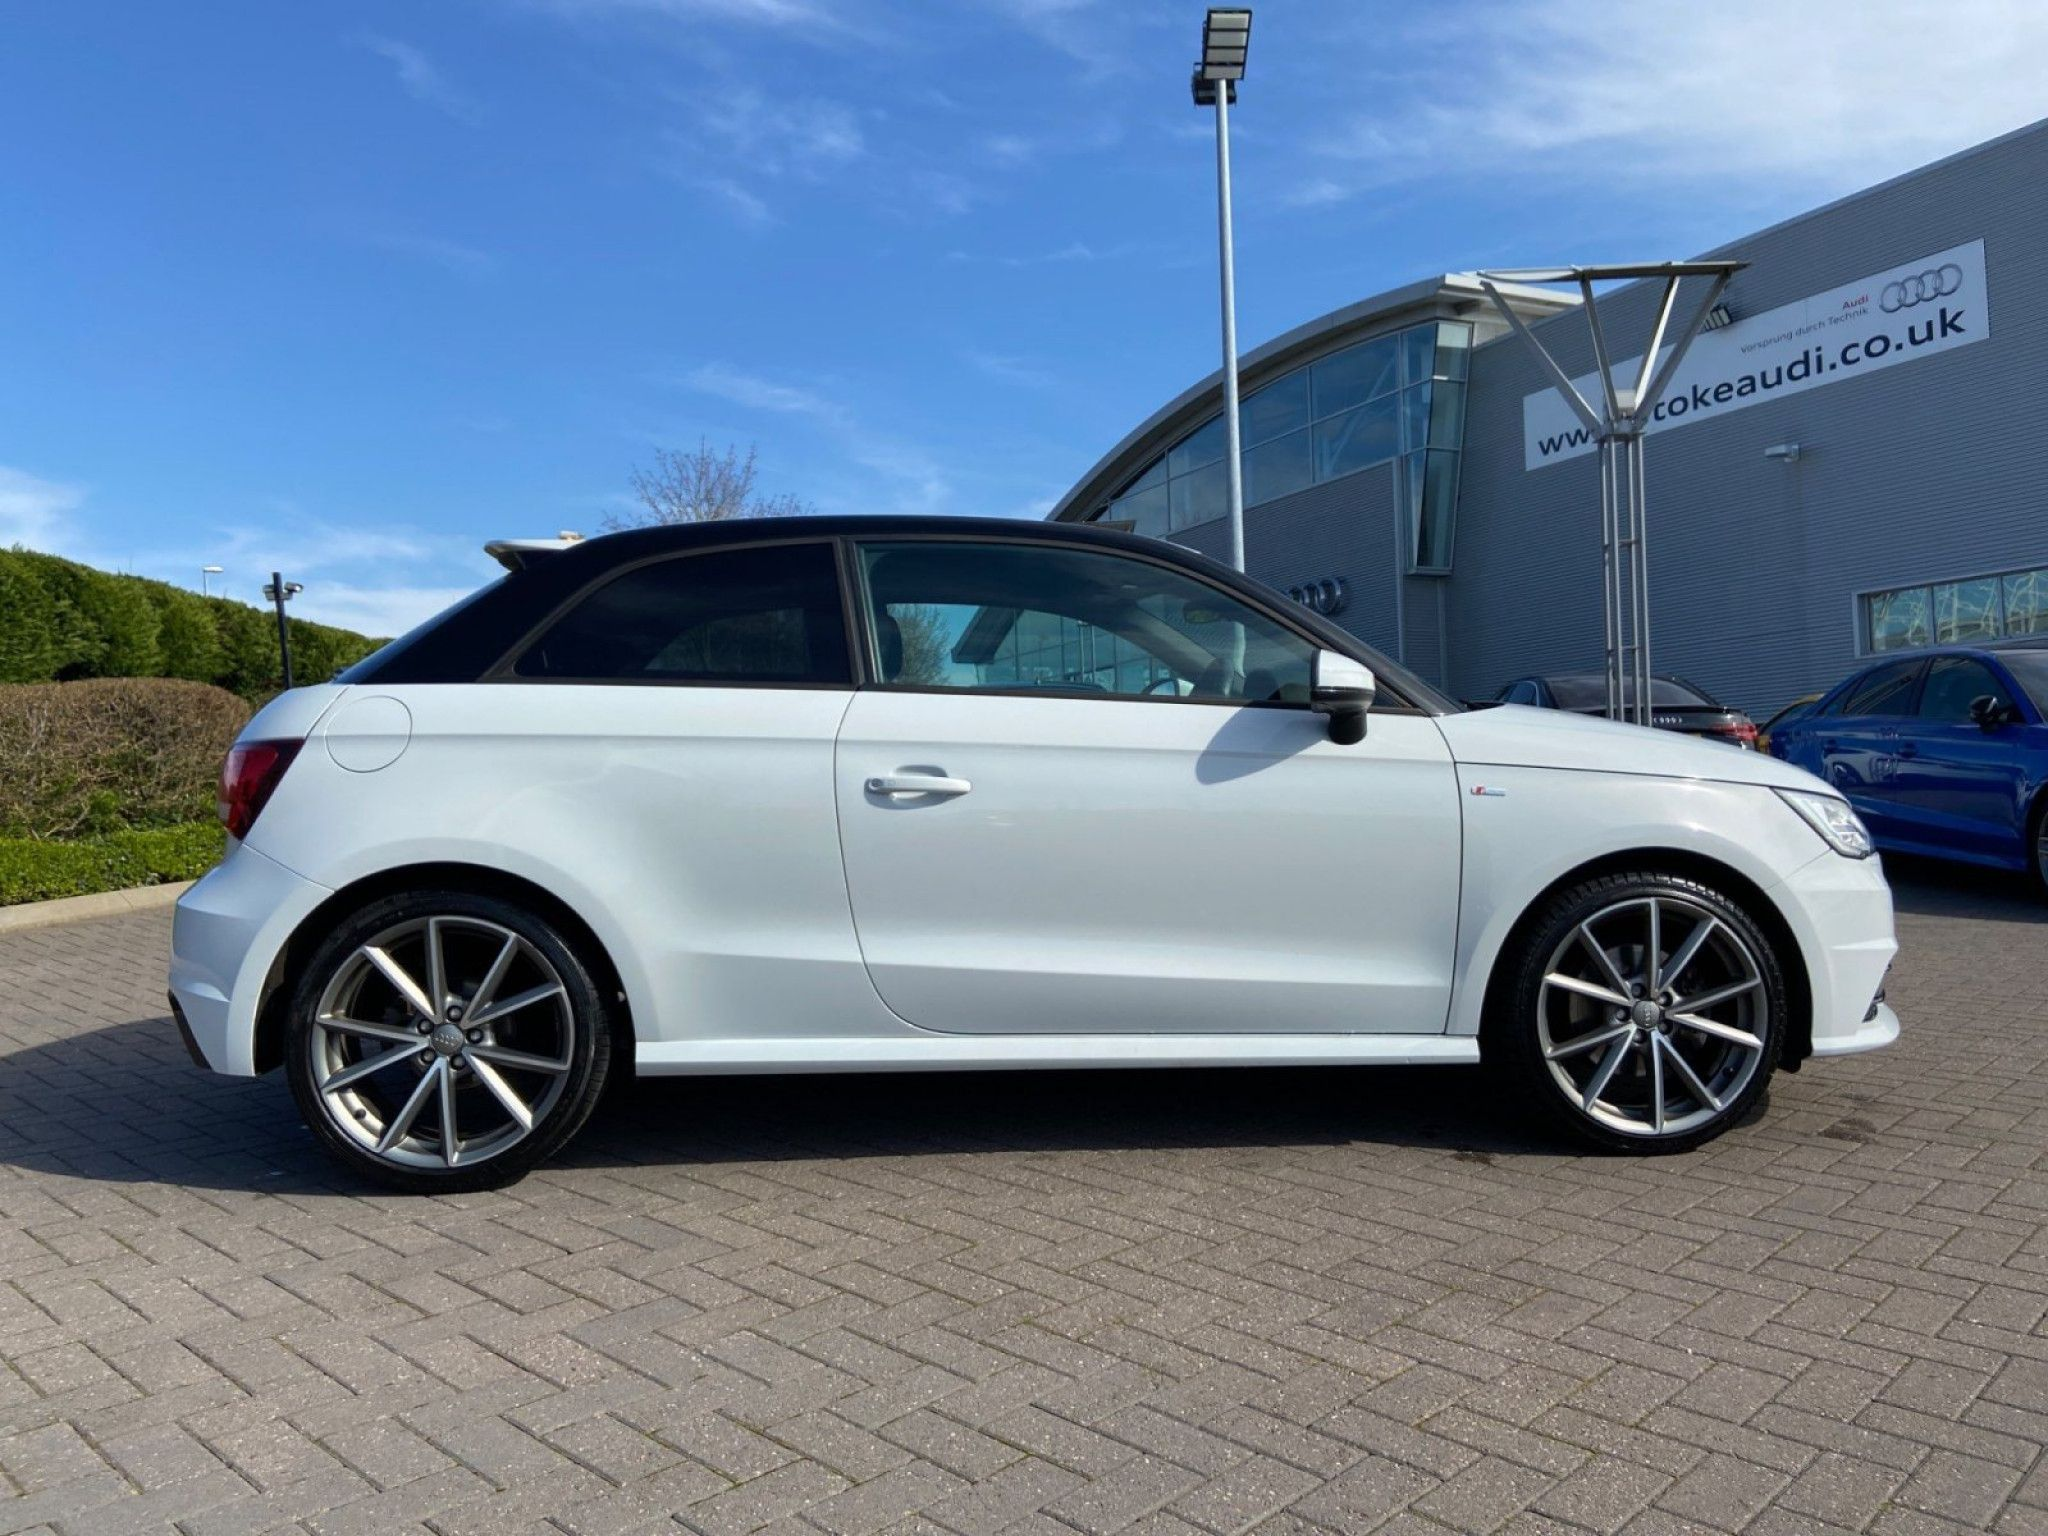 Audi A1 1 4 Tfsi 150 Black Edition 3dr For Sale In 2020 Audi Audi A1 Black Edition